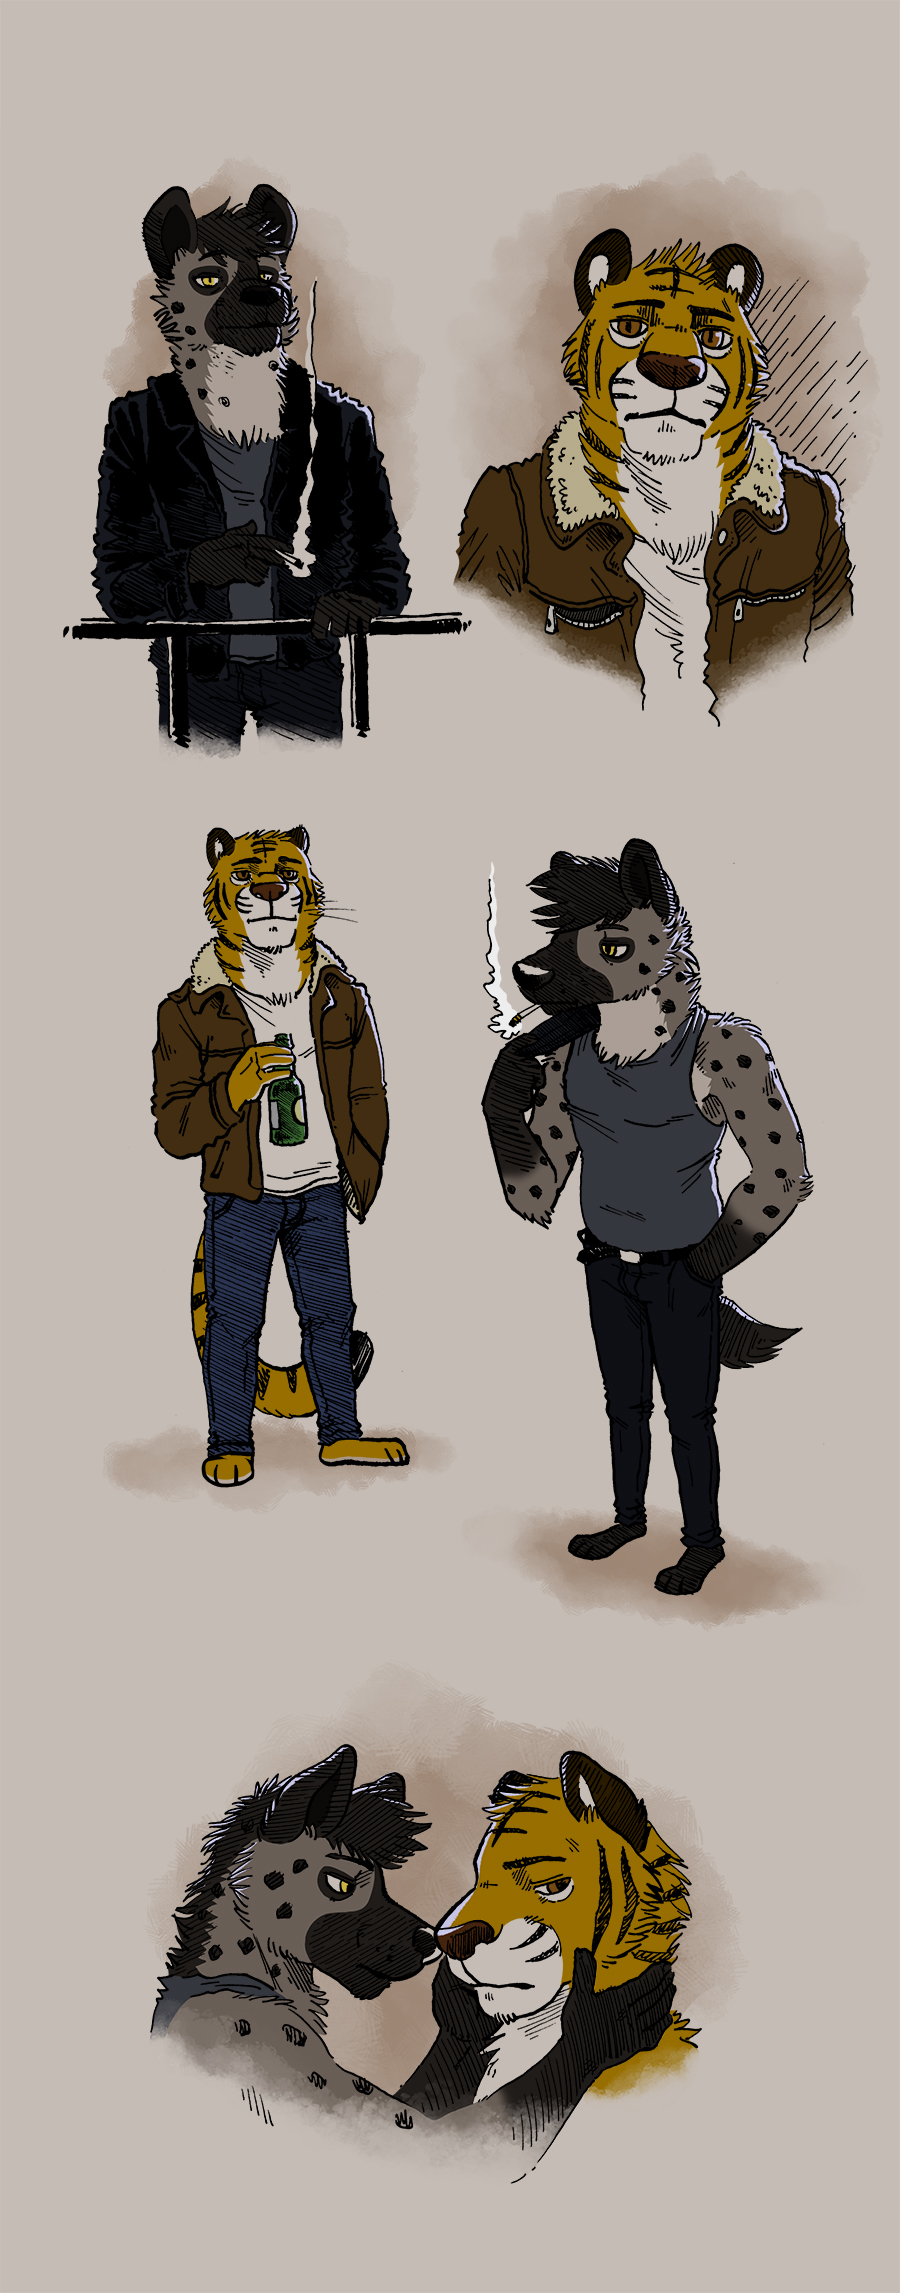 Most recent image: Hyena & Tiger designs